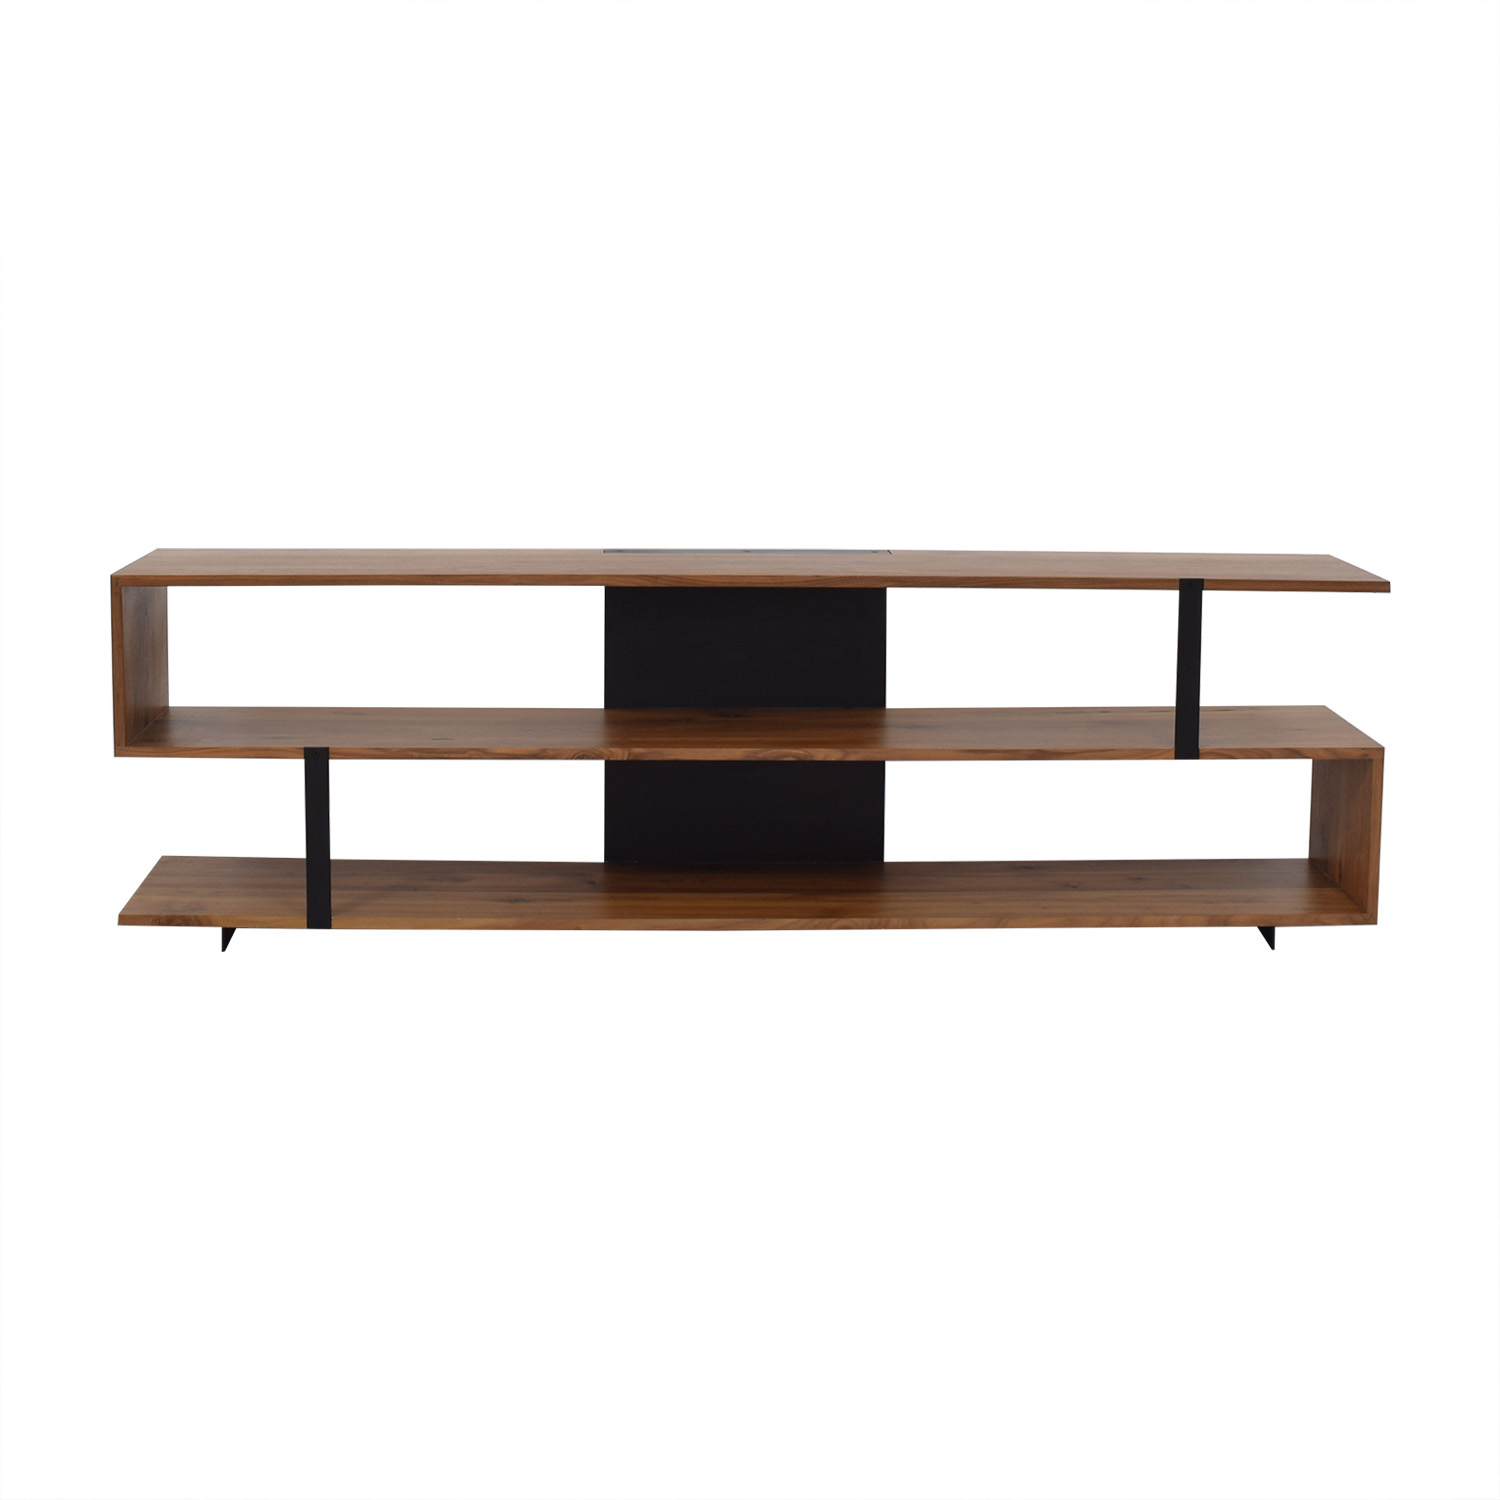 Crate & Barrel Crate & Barrel Austin Media Console Media Units